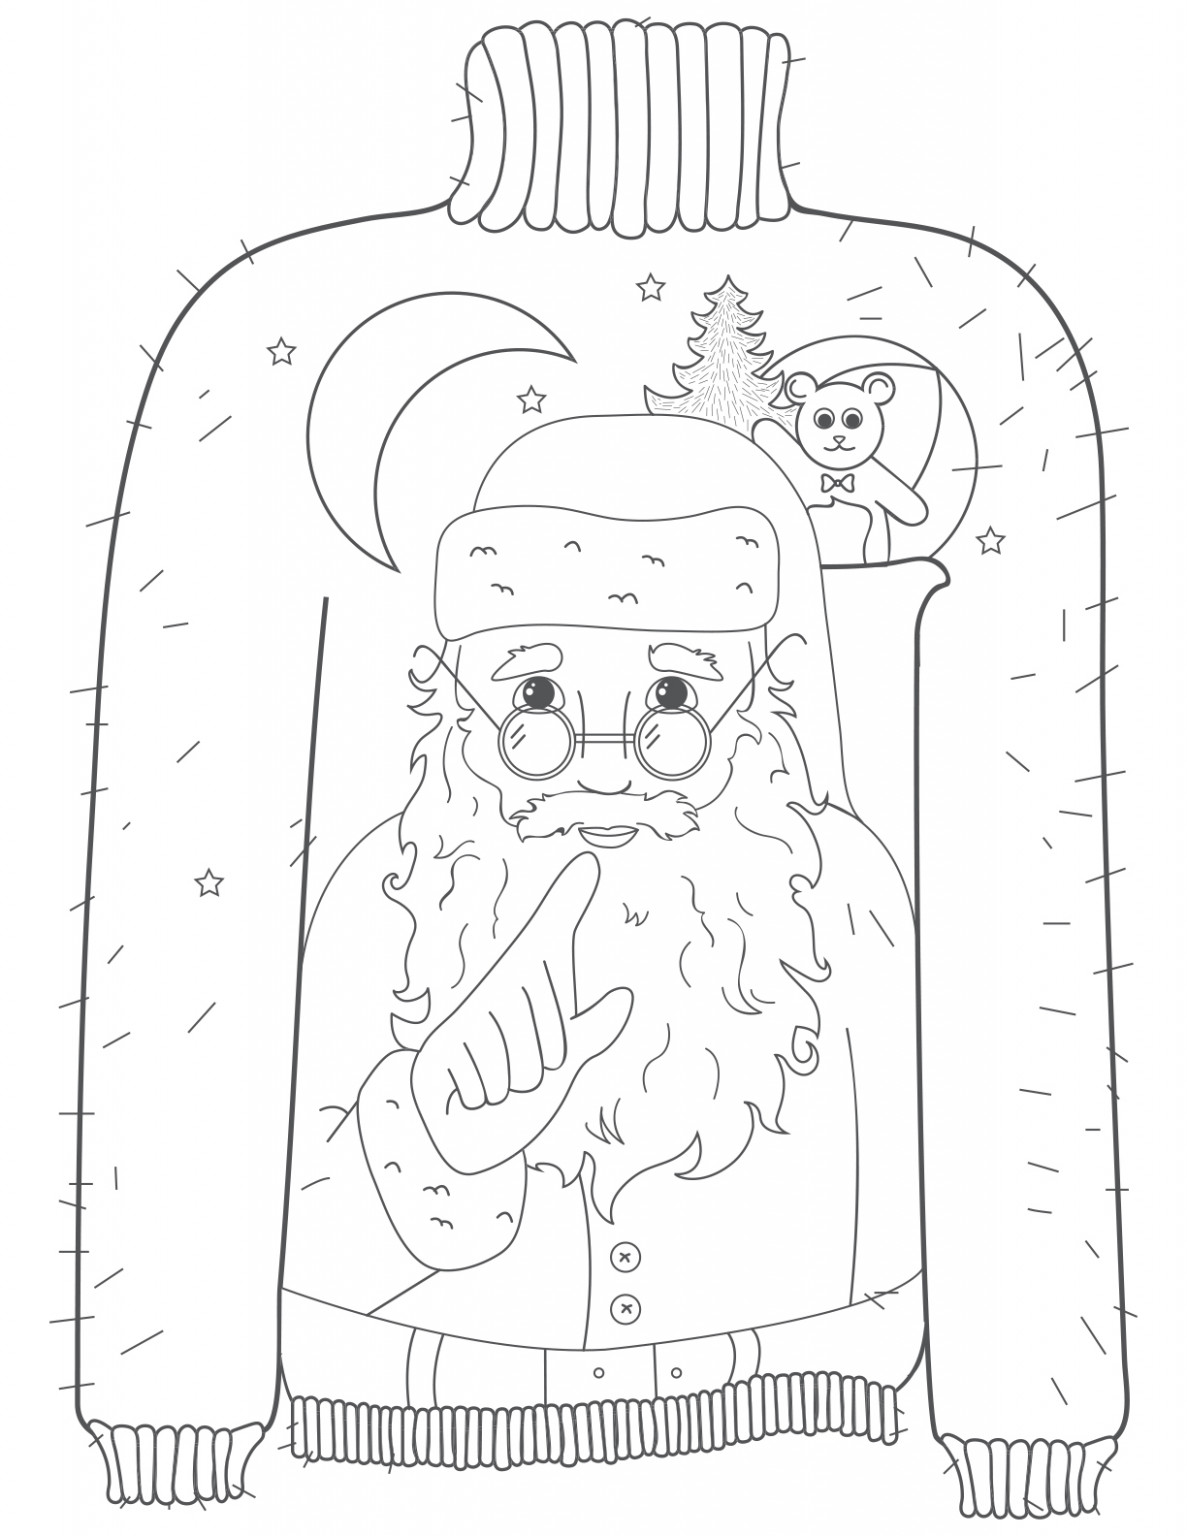 Coloring Sheets – Ragstock – Christmas Coloring Sheets That You Can Print